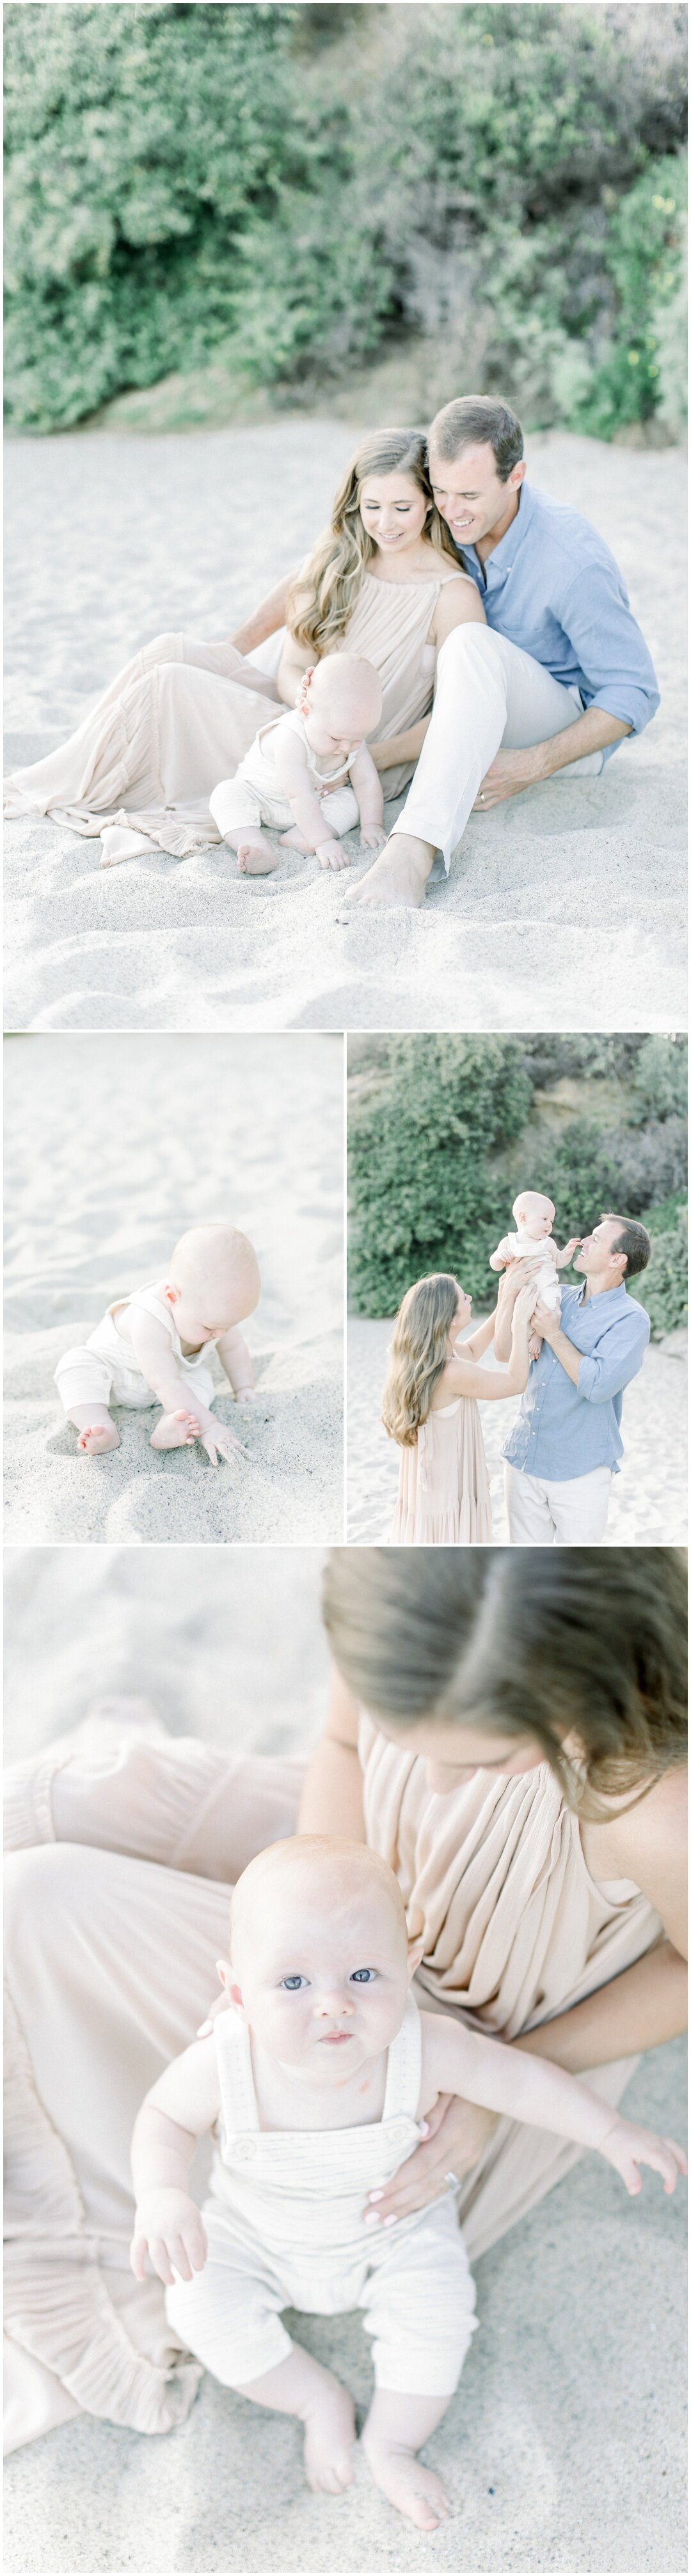 Newport+Beach+Newborn+Maternity+Photographer+Orange+County+Family+Photographer+Cori+Kleckner+Photography+Forgatch+Family+Matt+Kelley+Jack+Forgatch+_4419.jpg